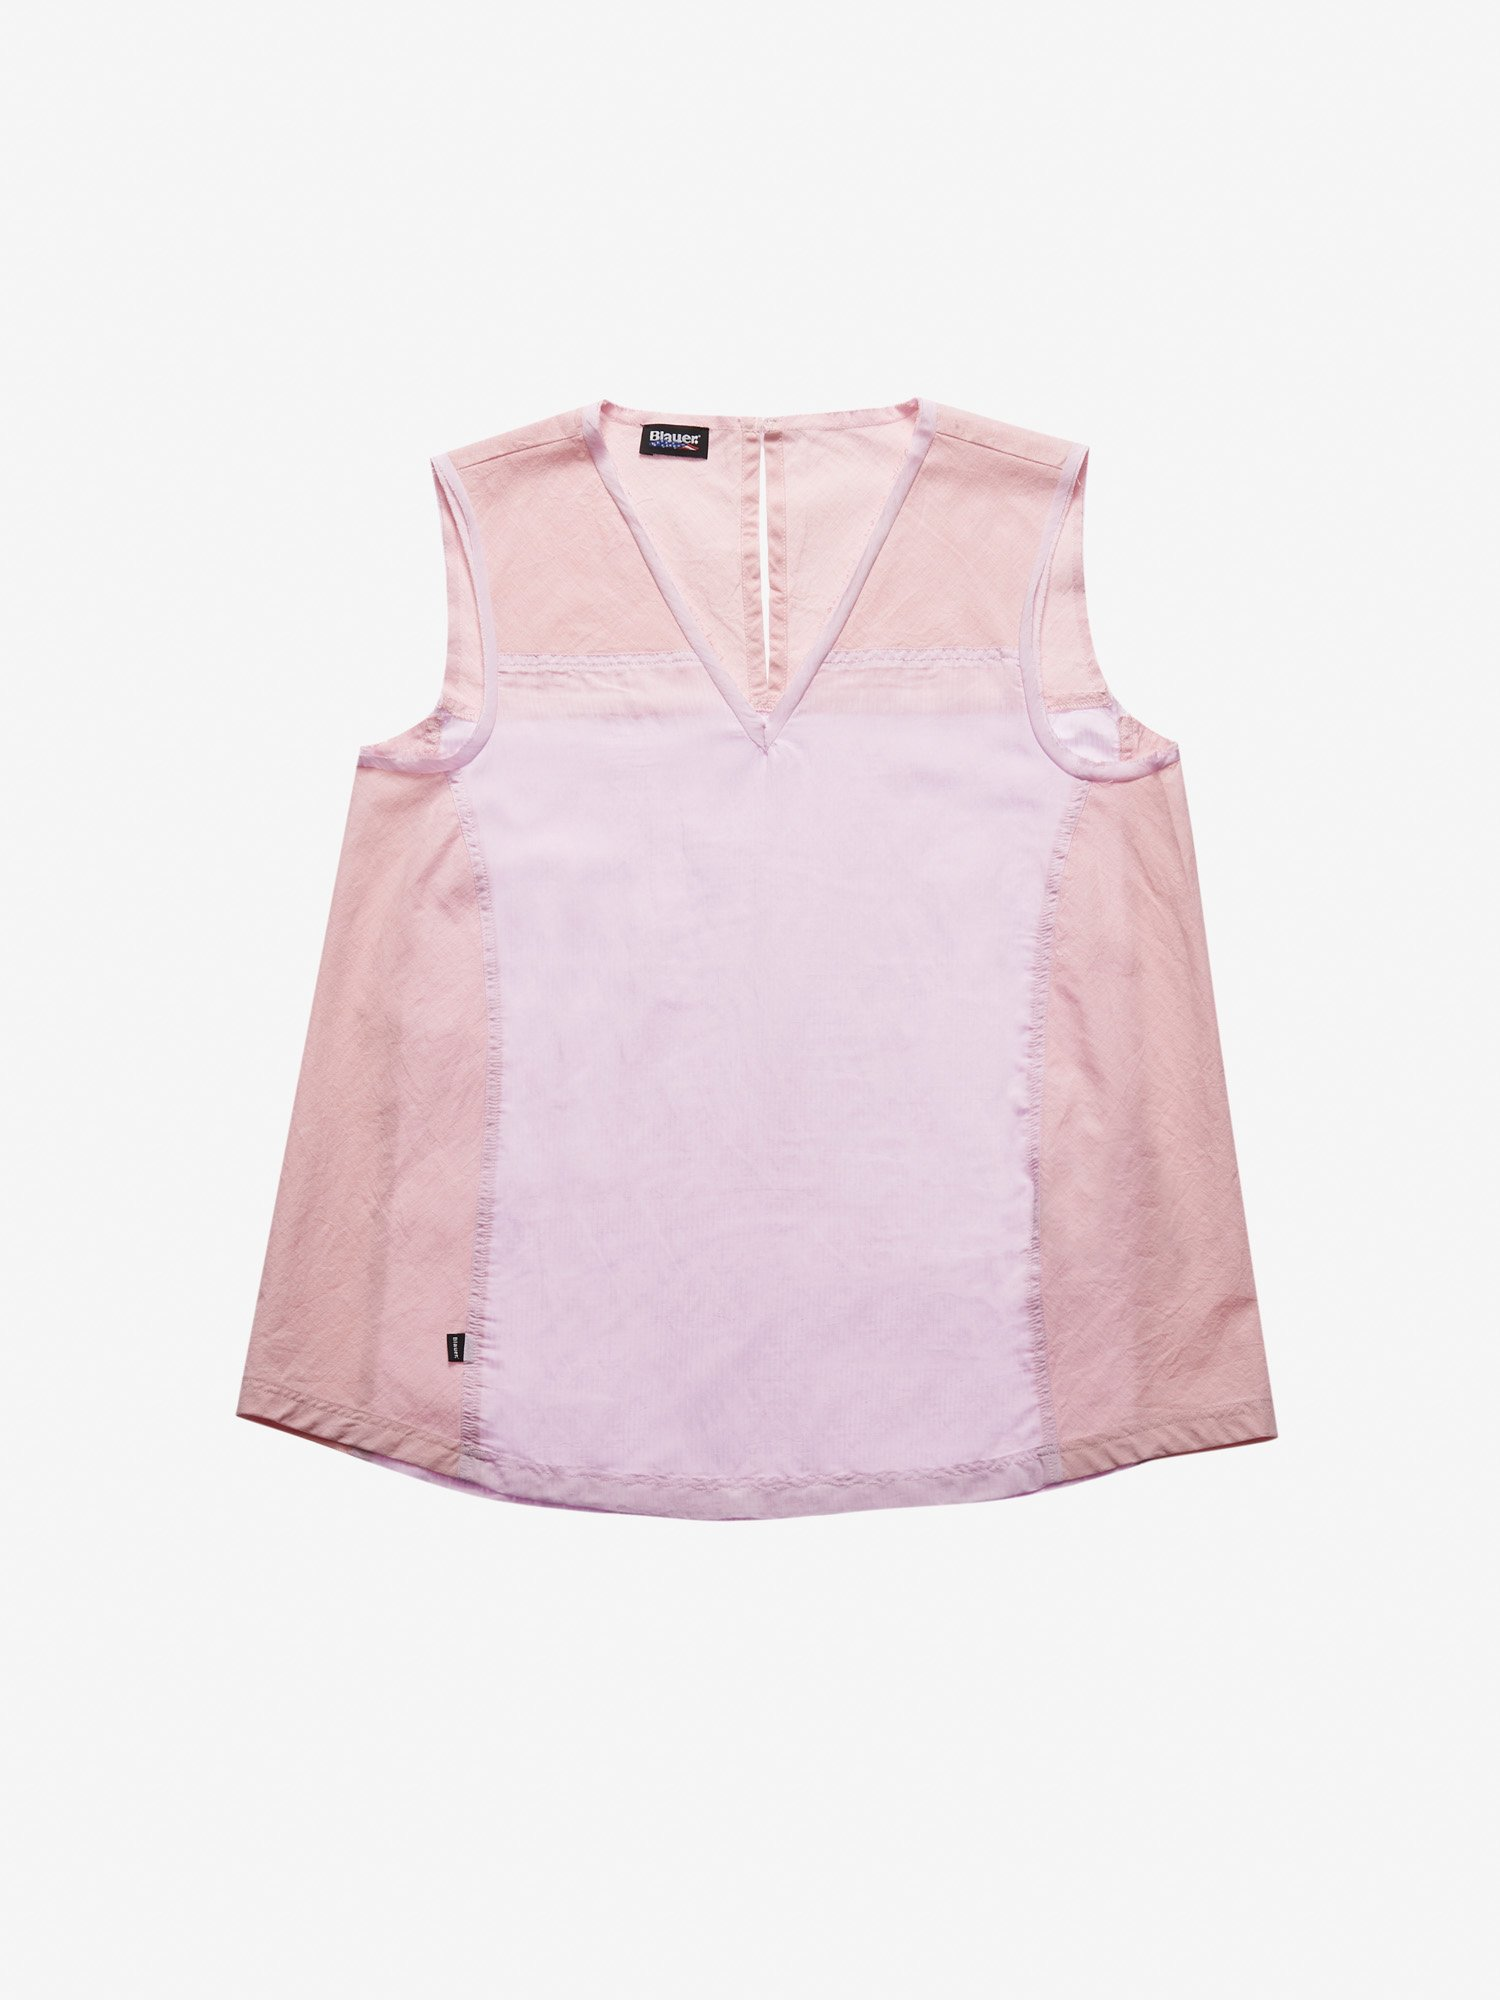 BICOLOUR SLEEVELESS SHIRT - Blauer